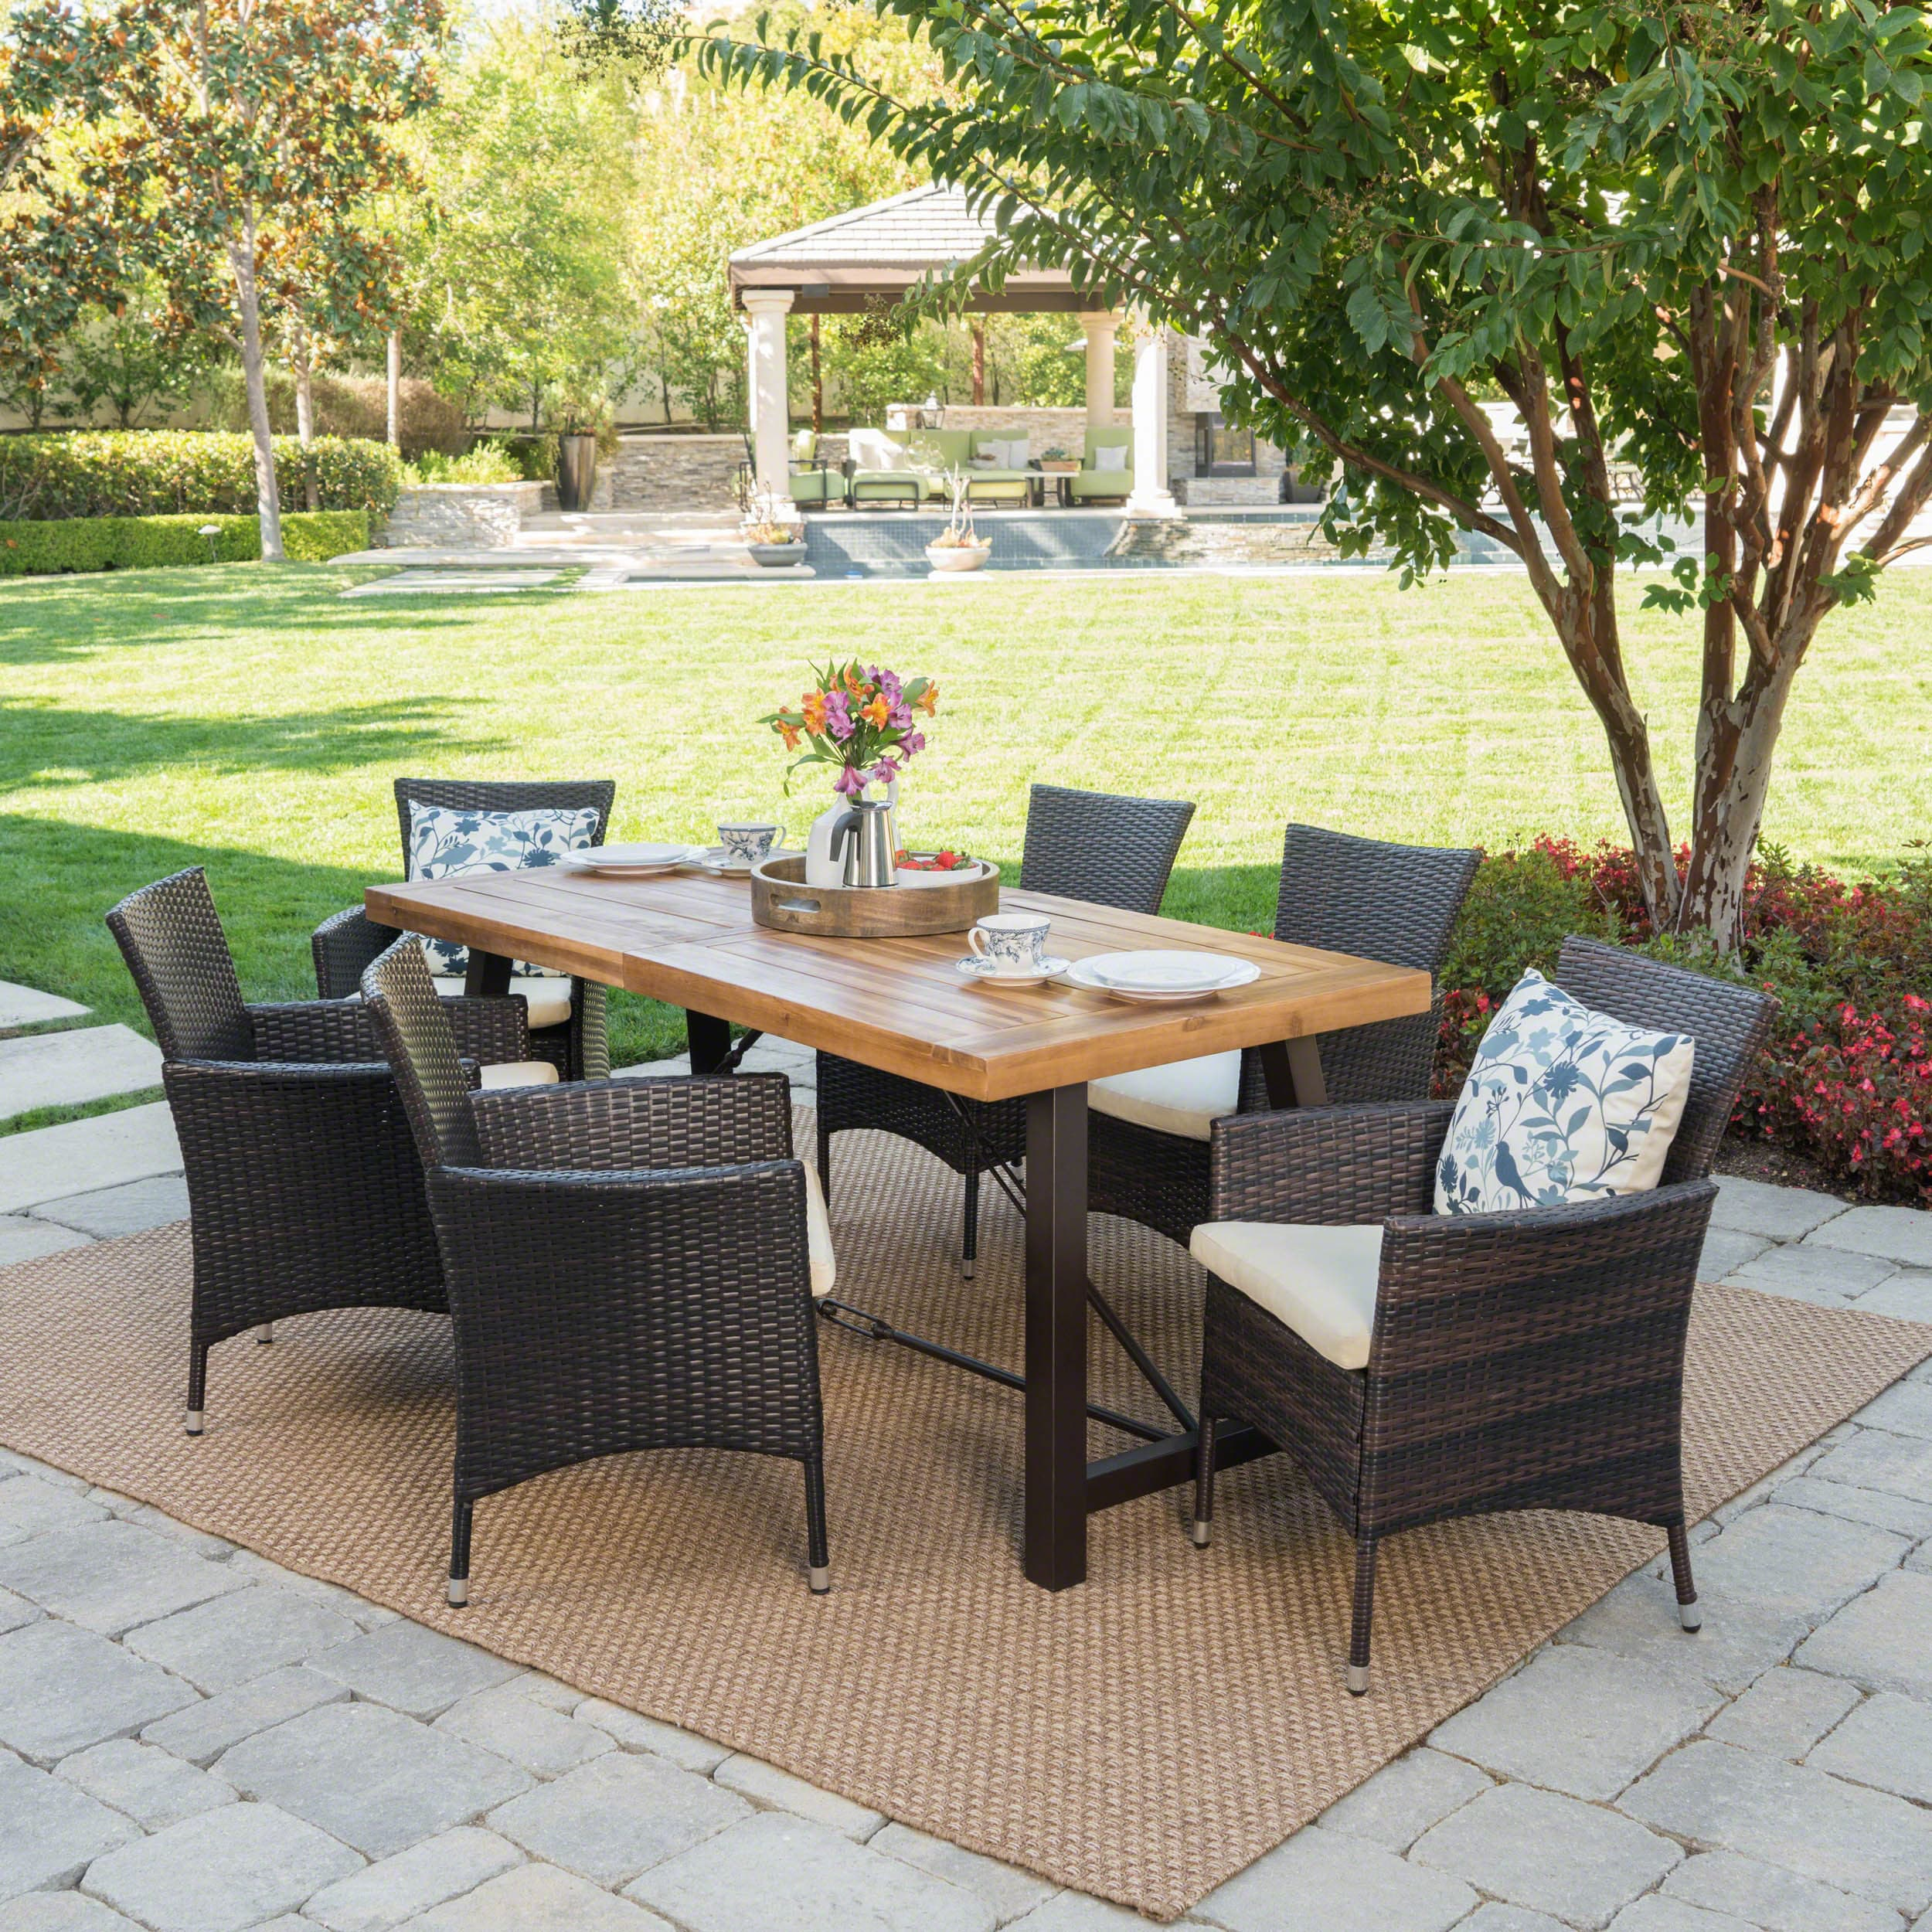 Shop torrens outdoor 7 piece rectangle wicker wood dining set with cushions by christopher knight home on sale free shipping today overstock